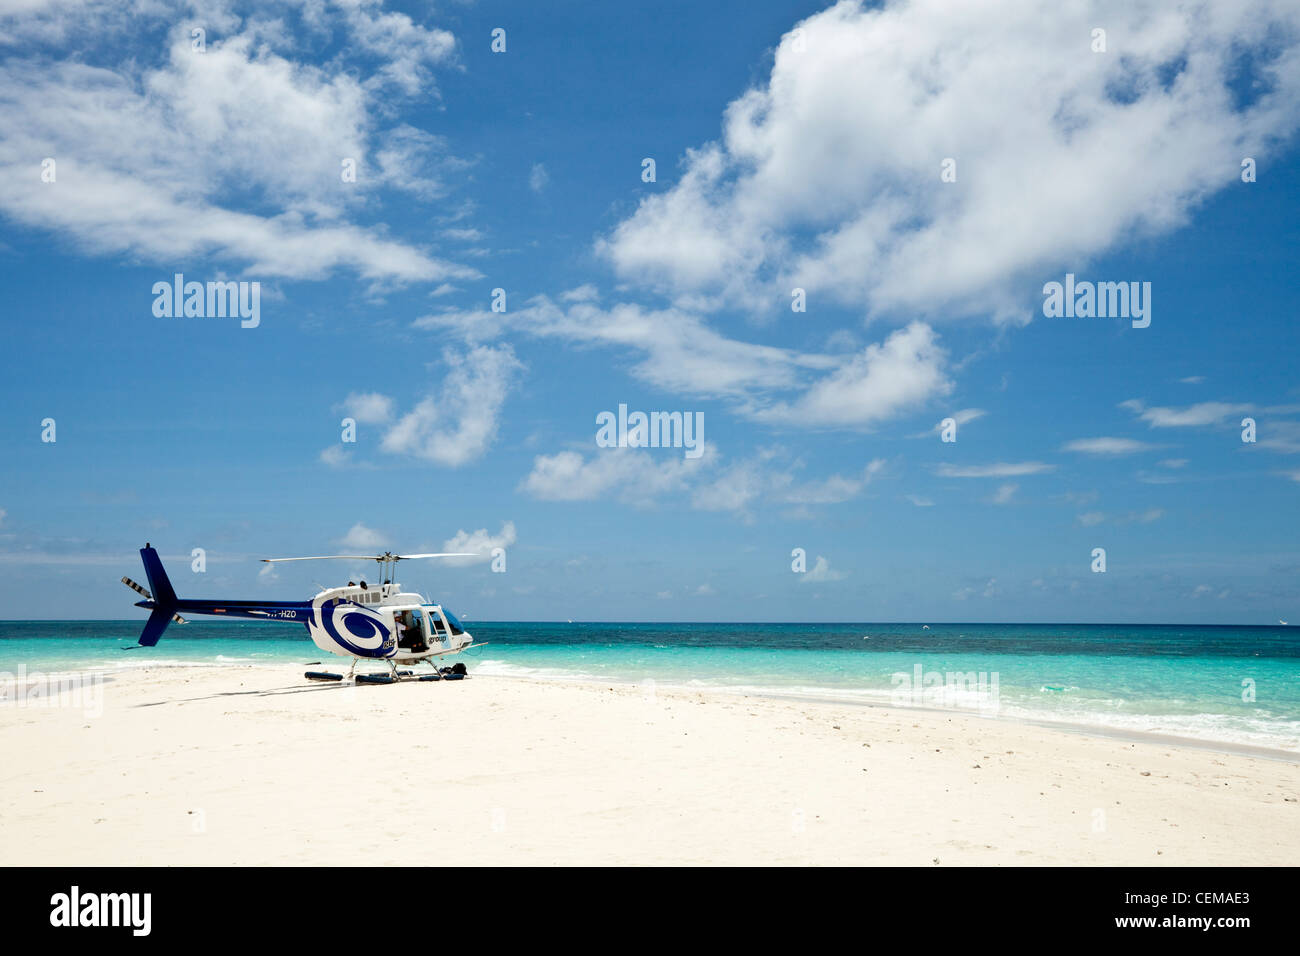 Helicopter on Vlassof Cay - a sand cay off the coast of Cairns. Great Barrier Reef Marine Park, Queensland, Australia - Stock Image